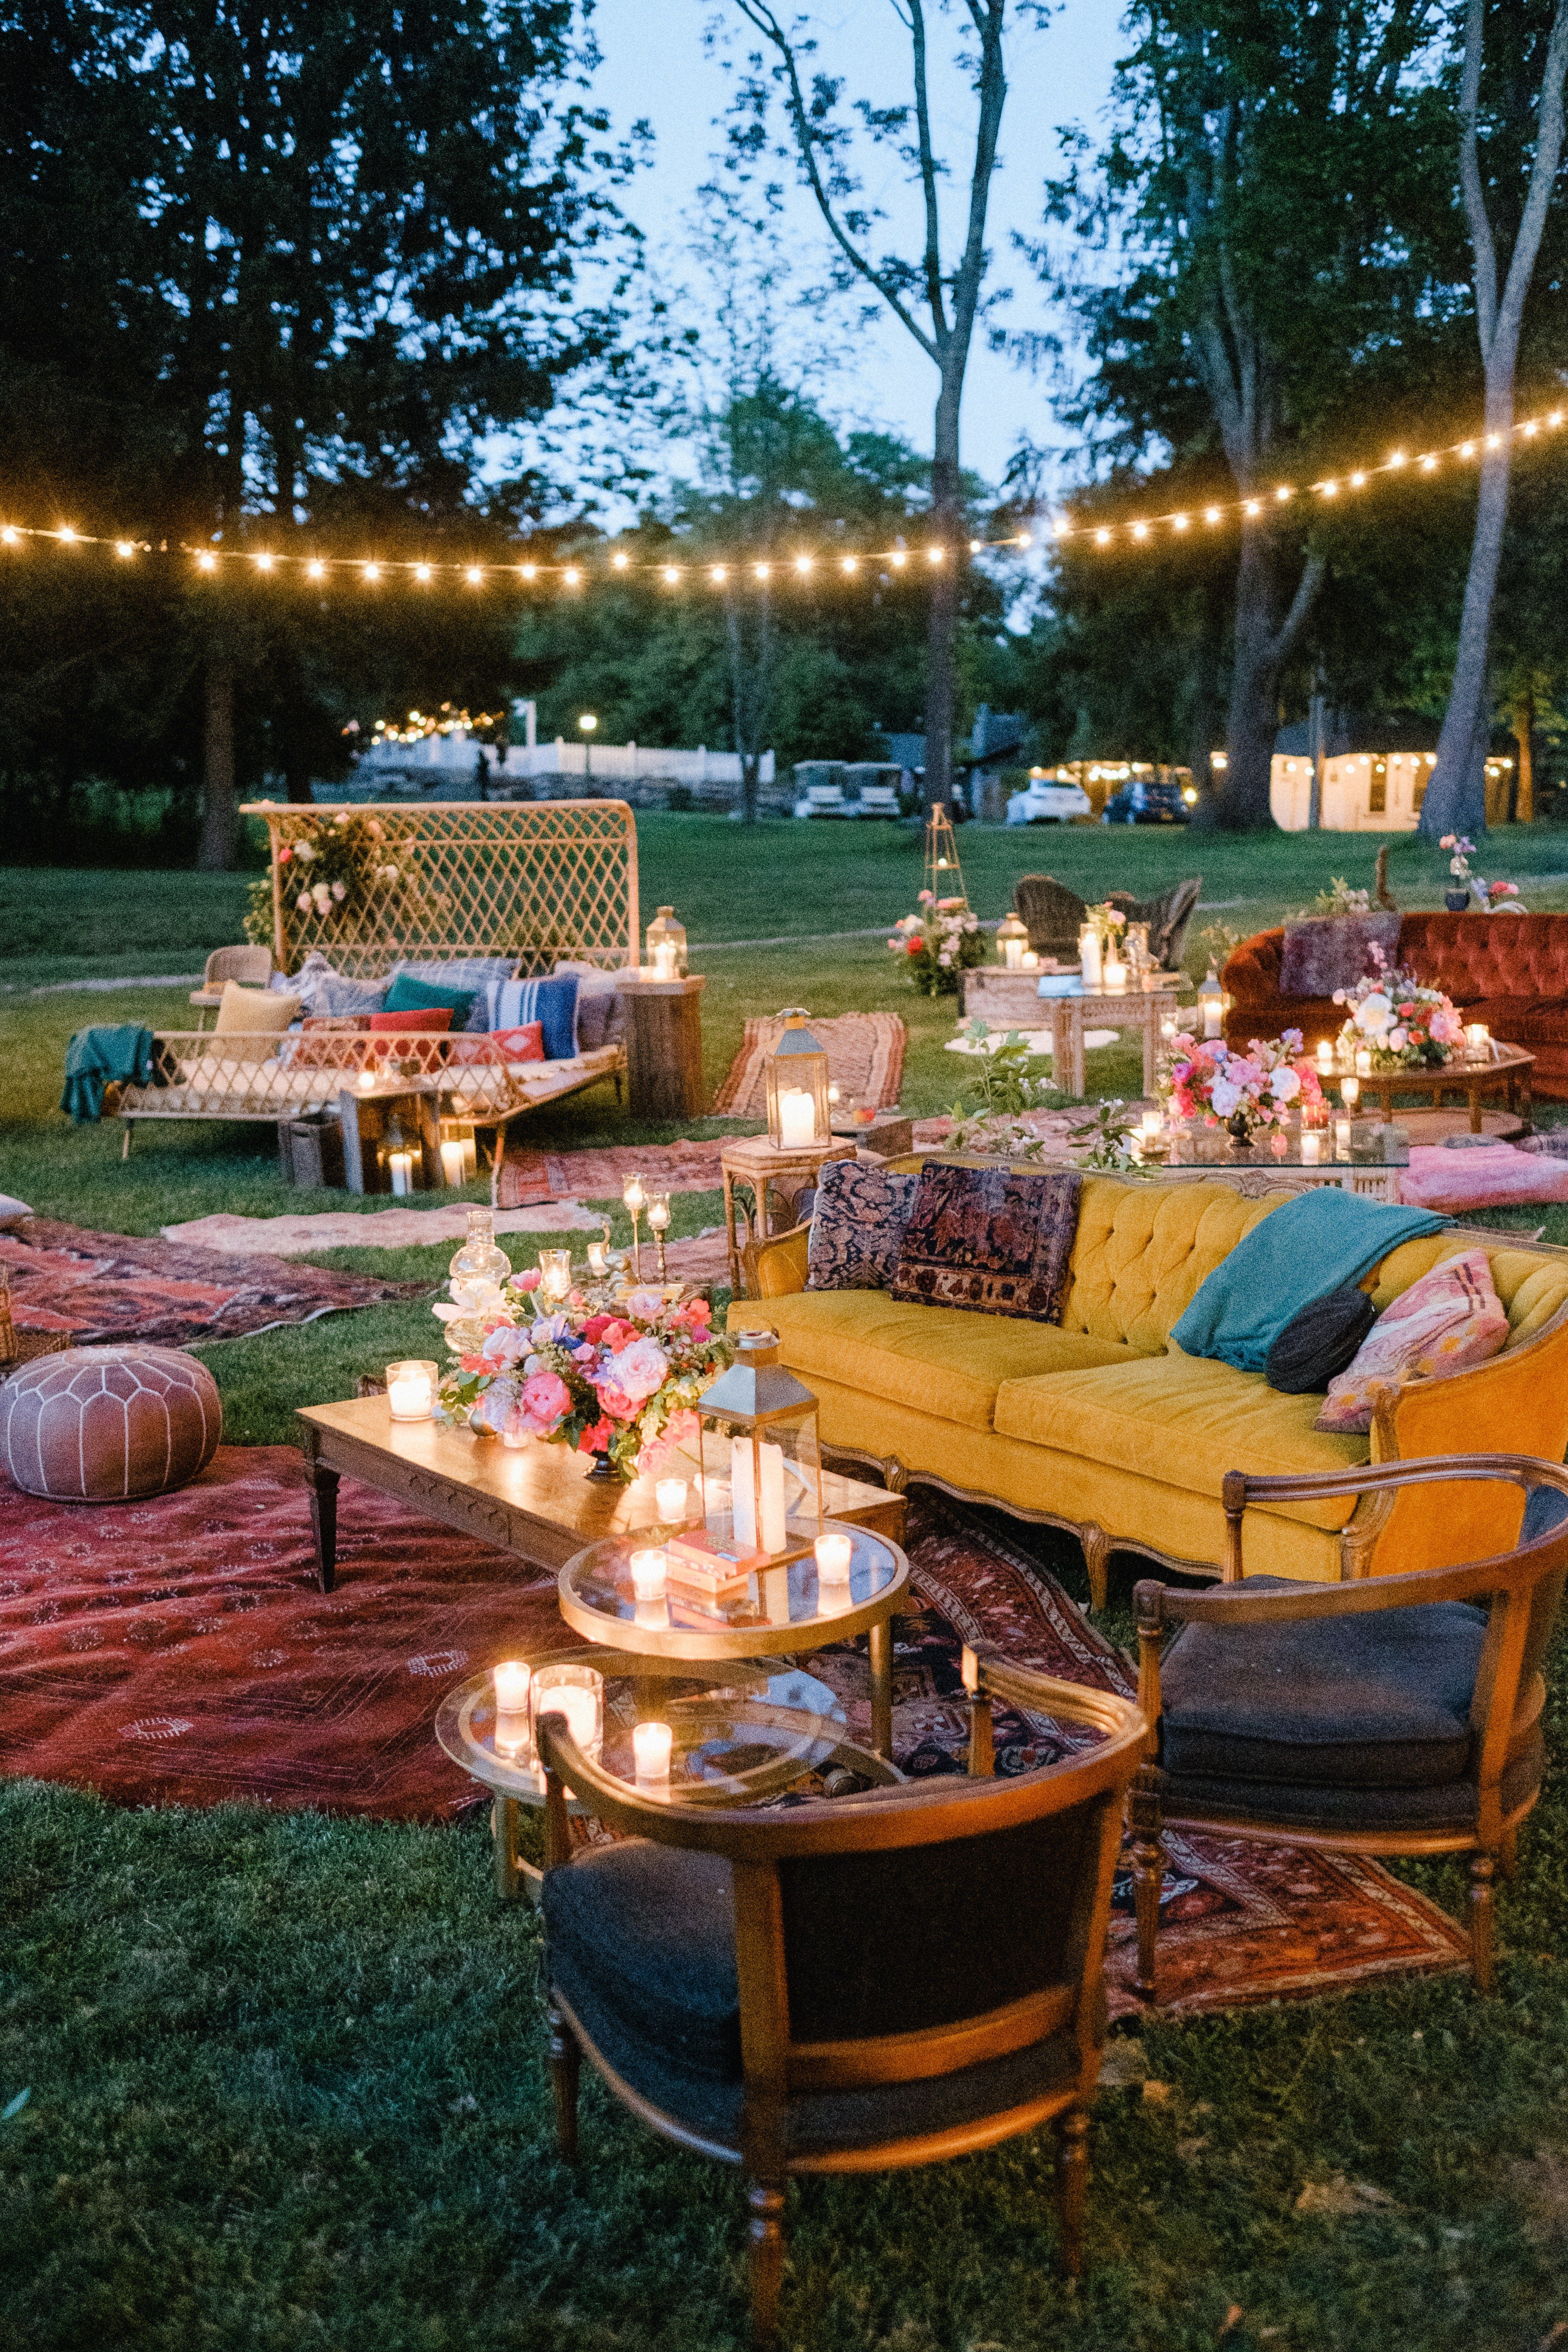 55 Unique Engagement Party Ideas to Kick Off Your Wedding Journey